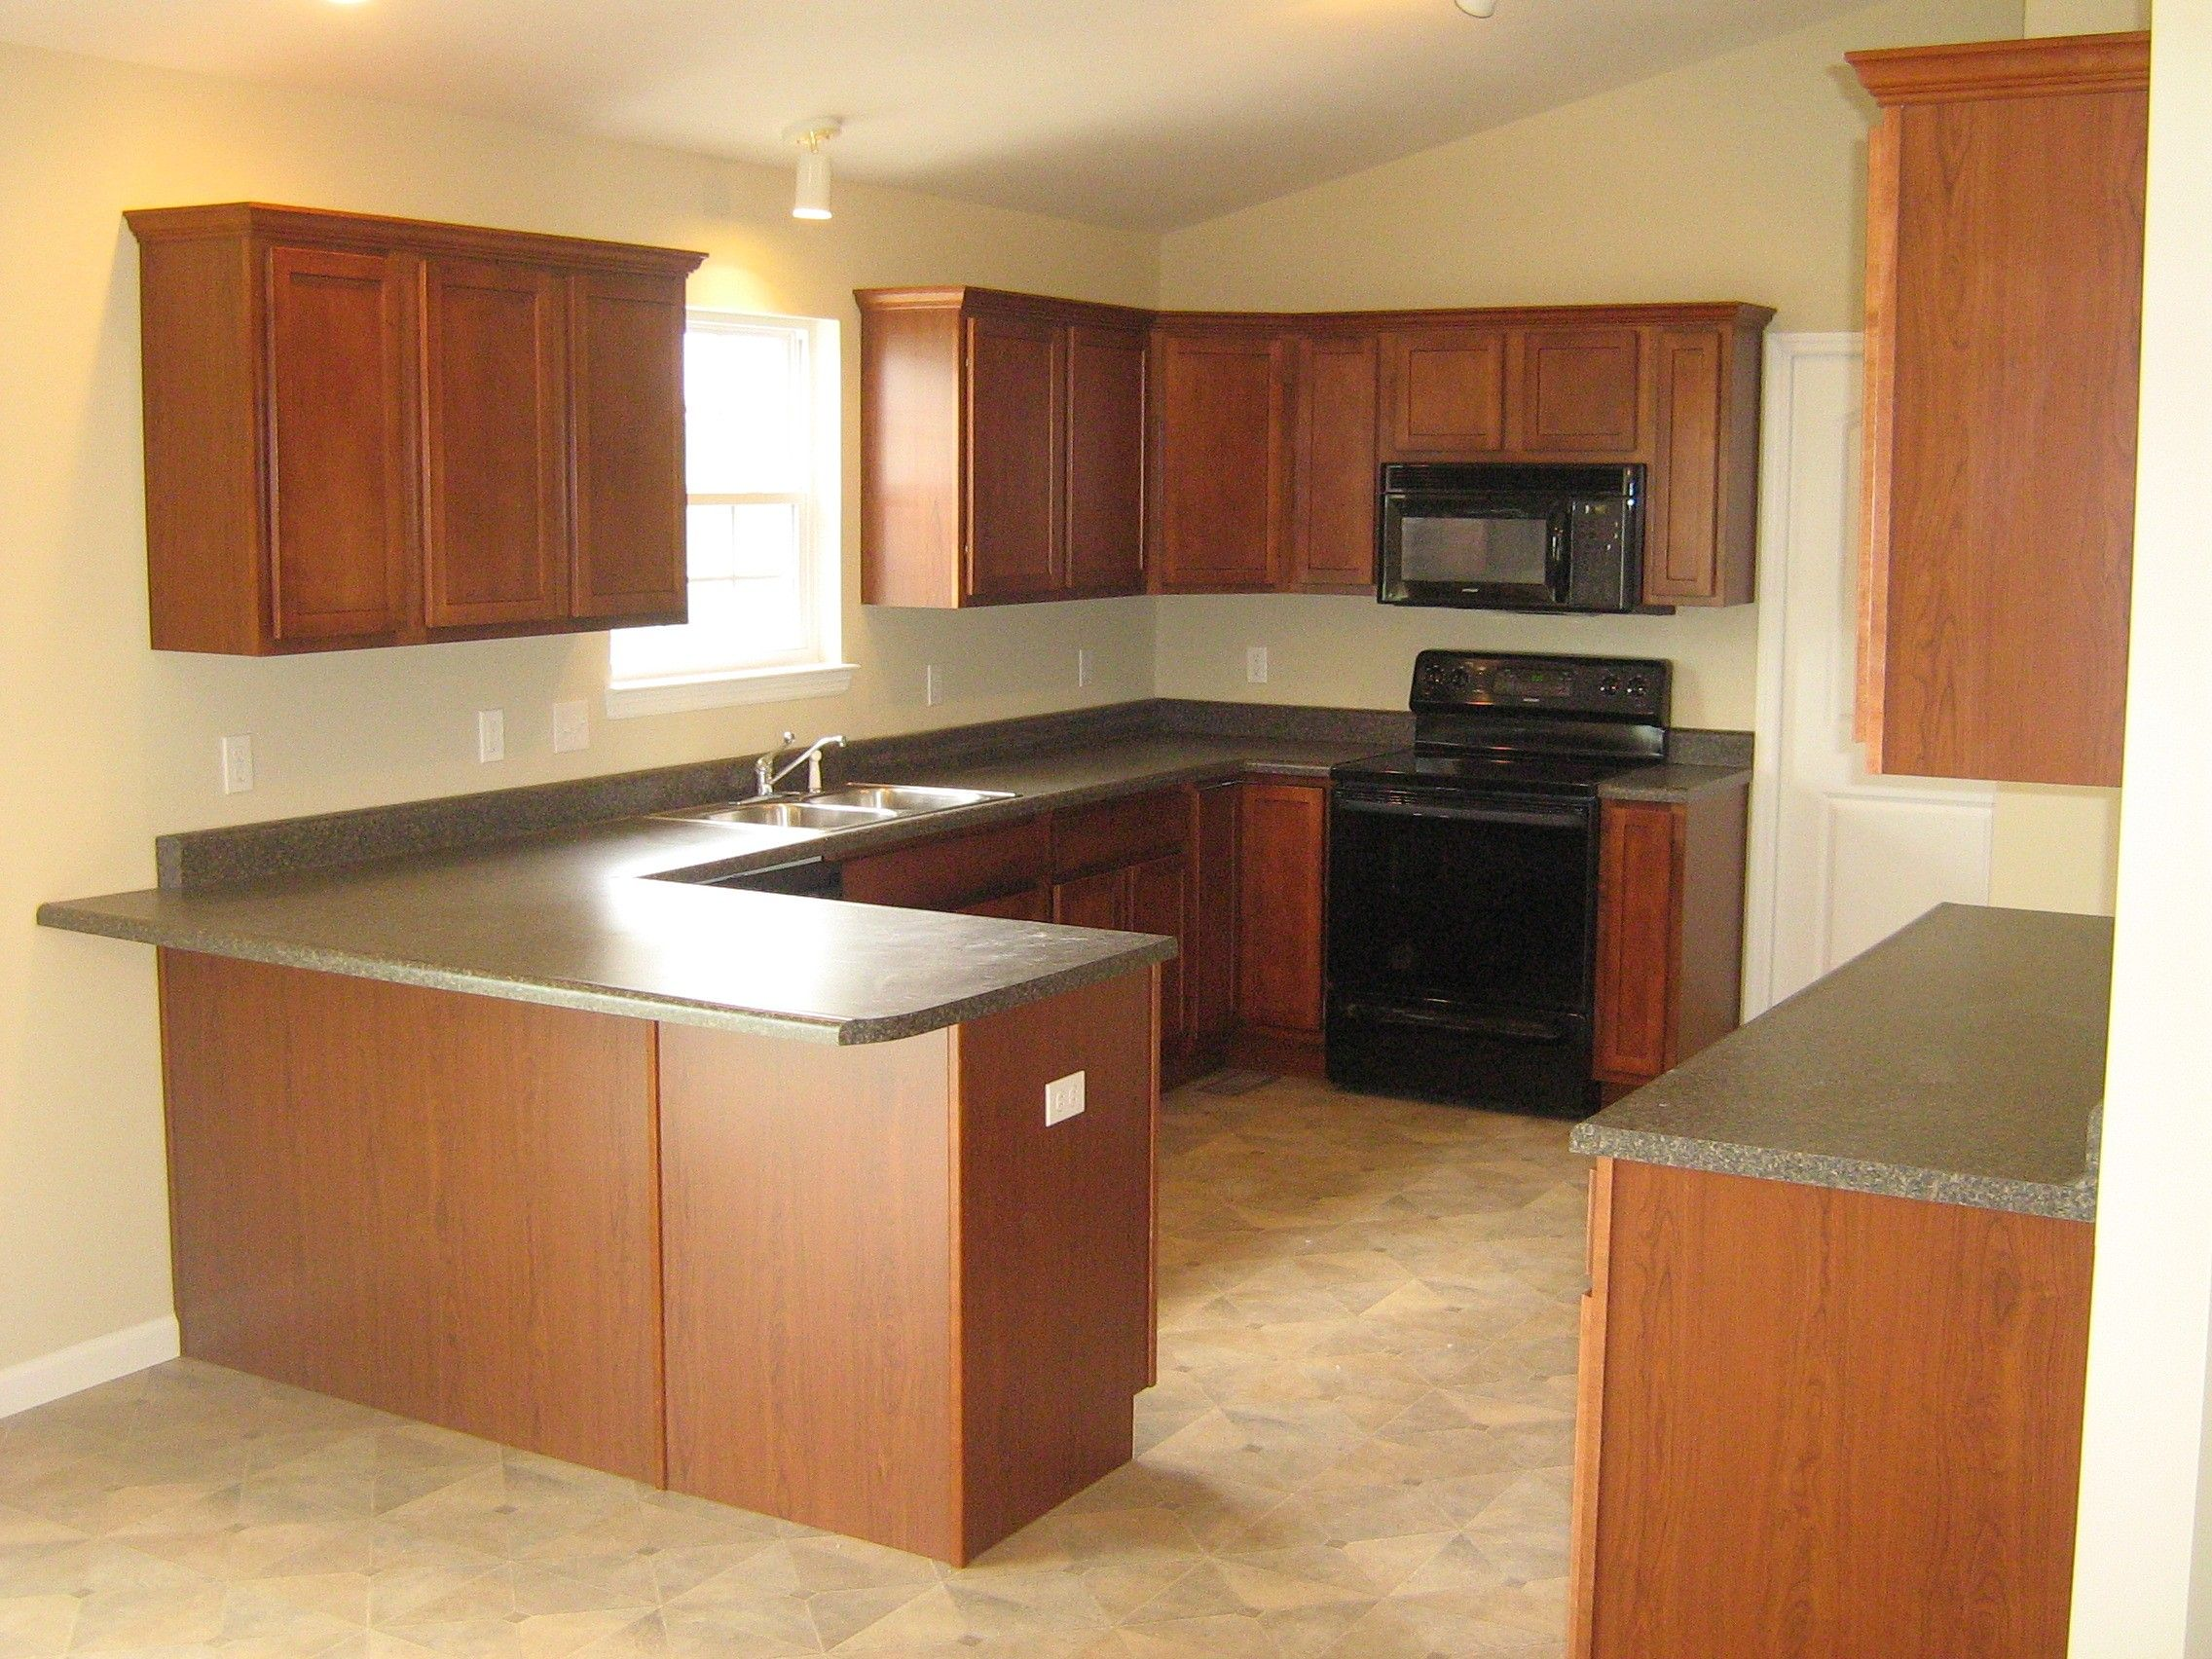 Kitchen featured in The Persimmon By Cannon Builders, Inc.  in St. Louis, MO